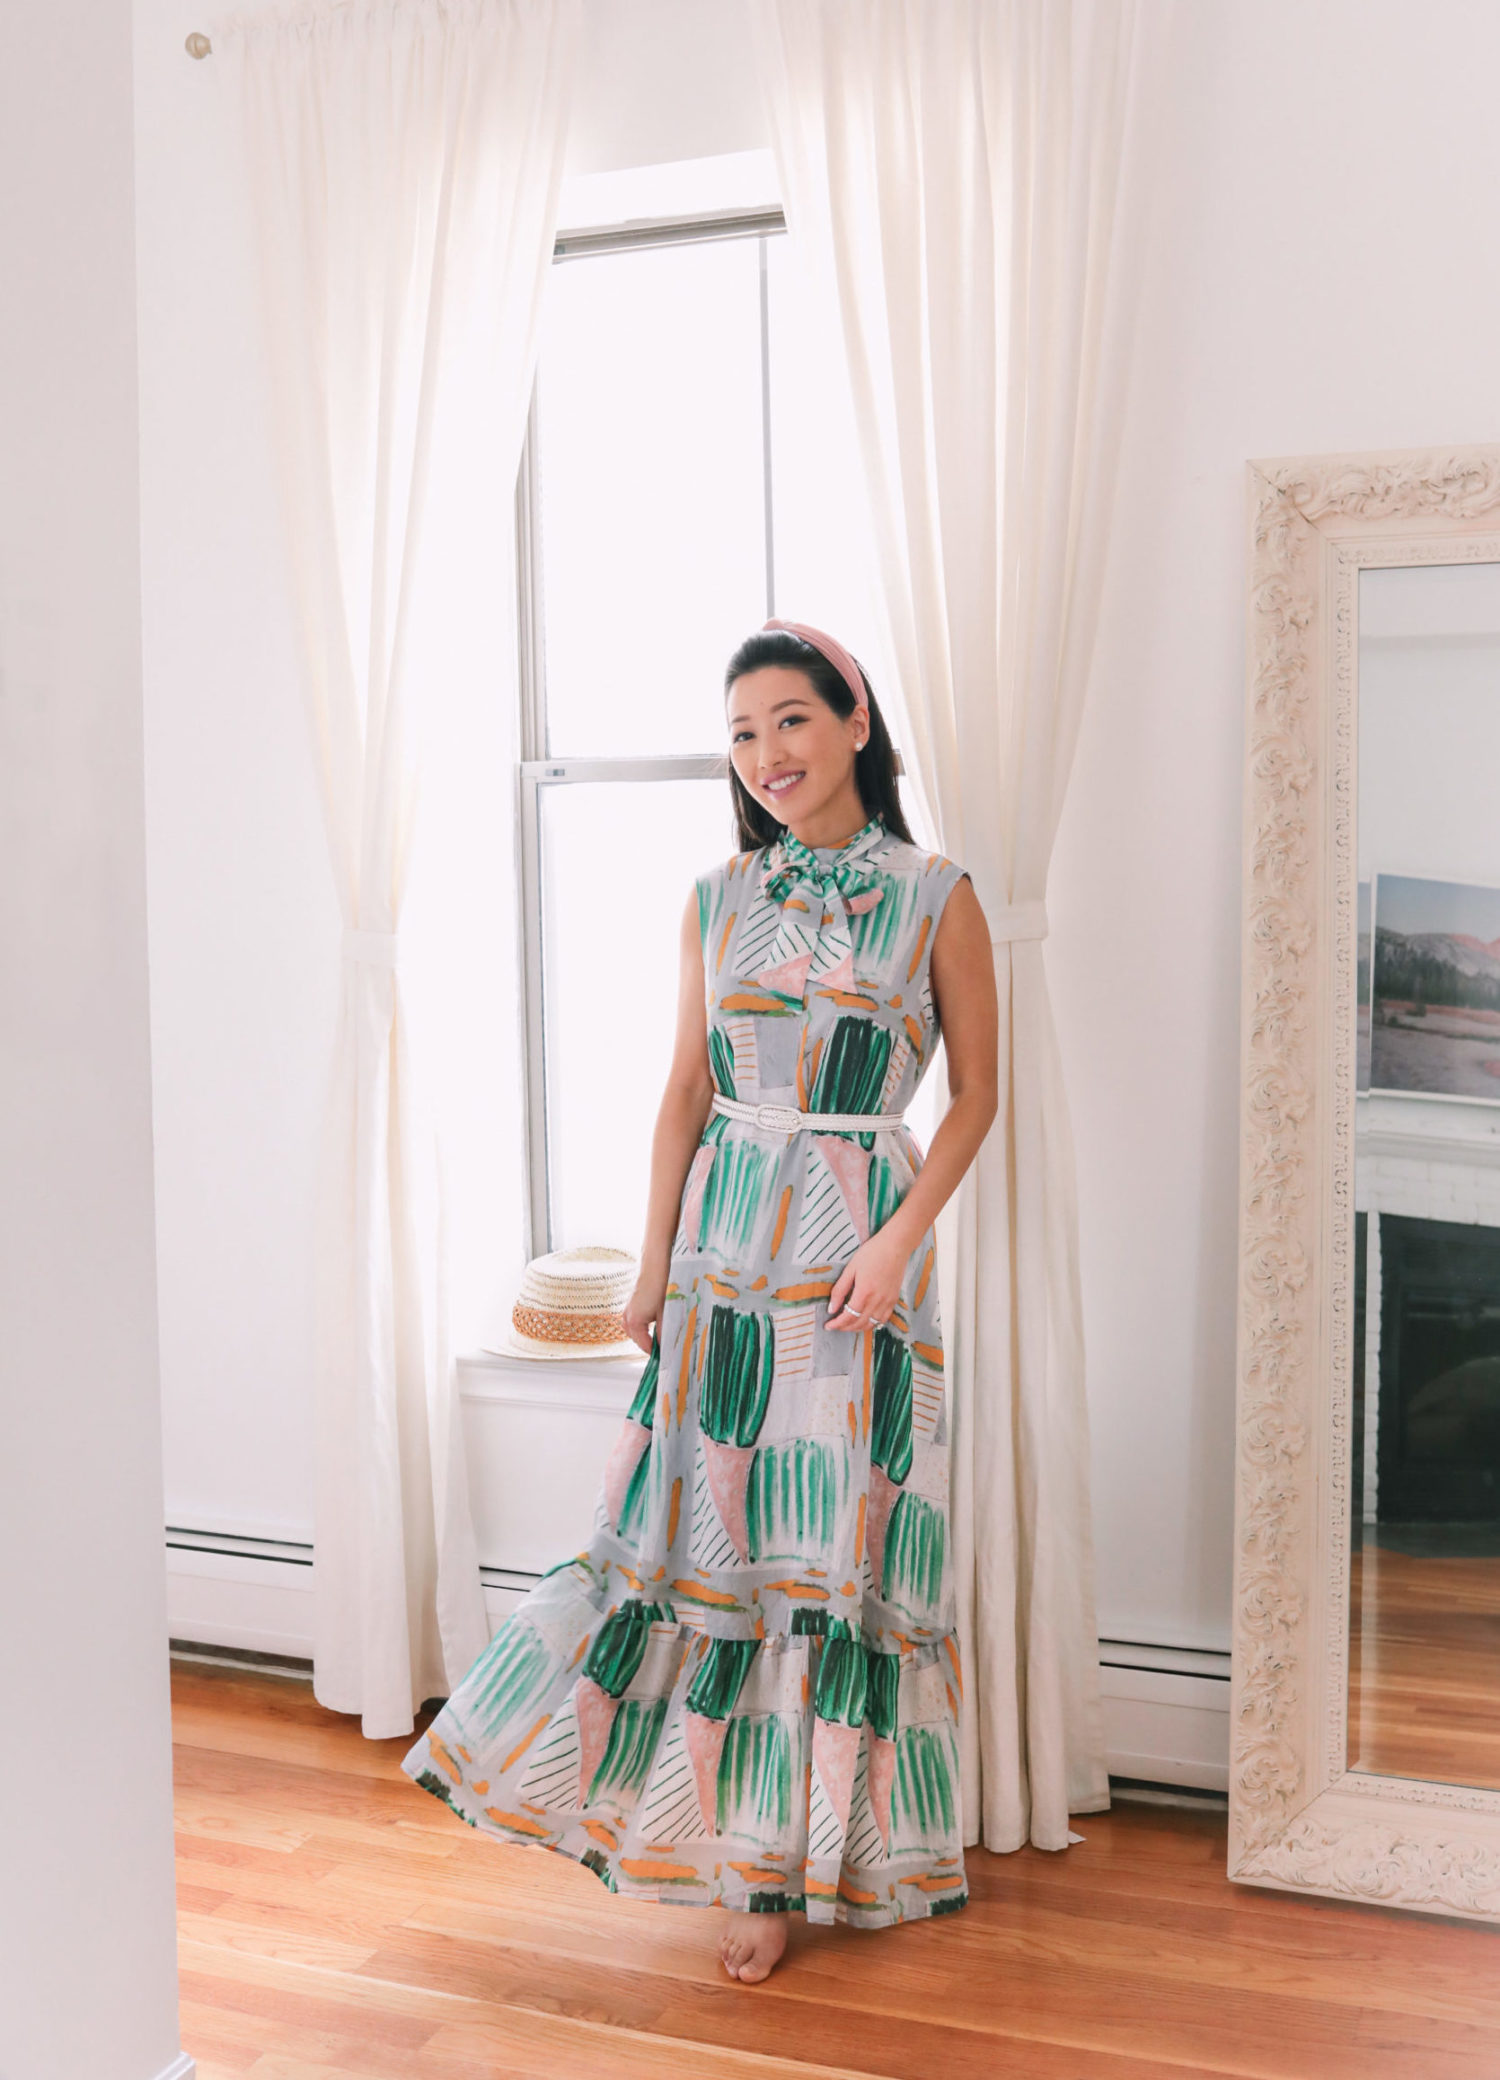 anthropologie petite maxi dress maternity spring outfit